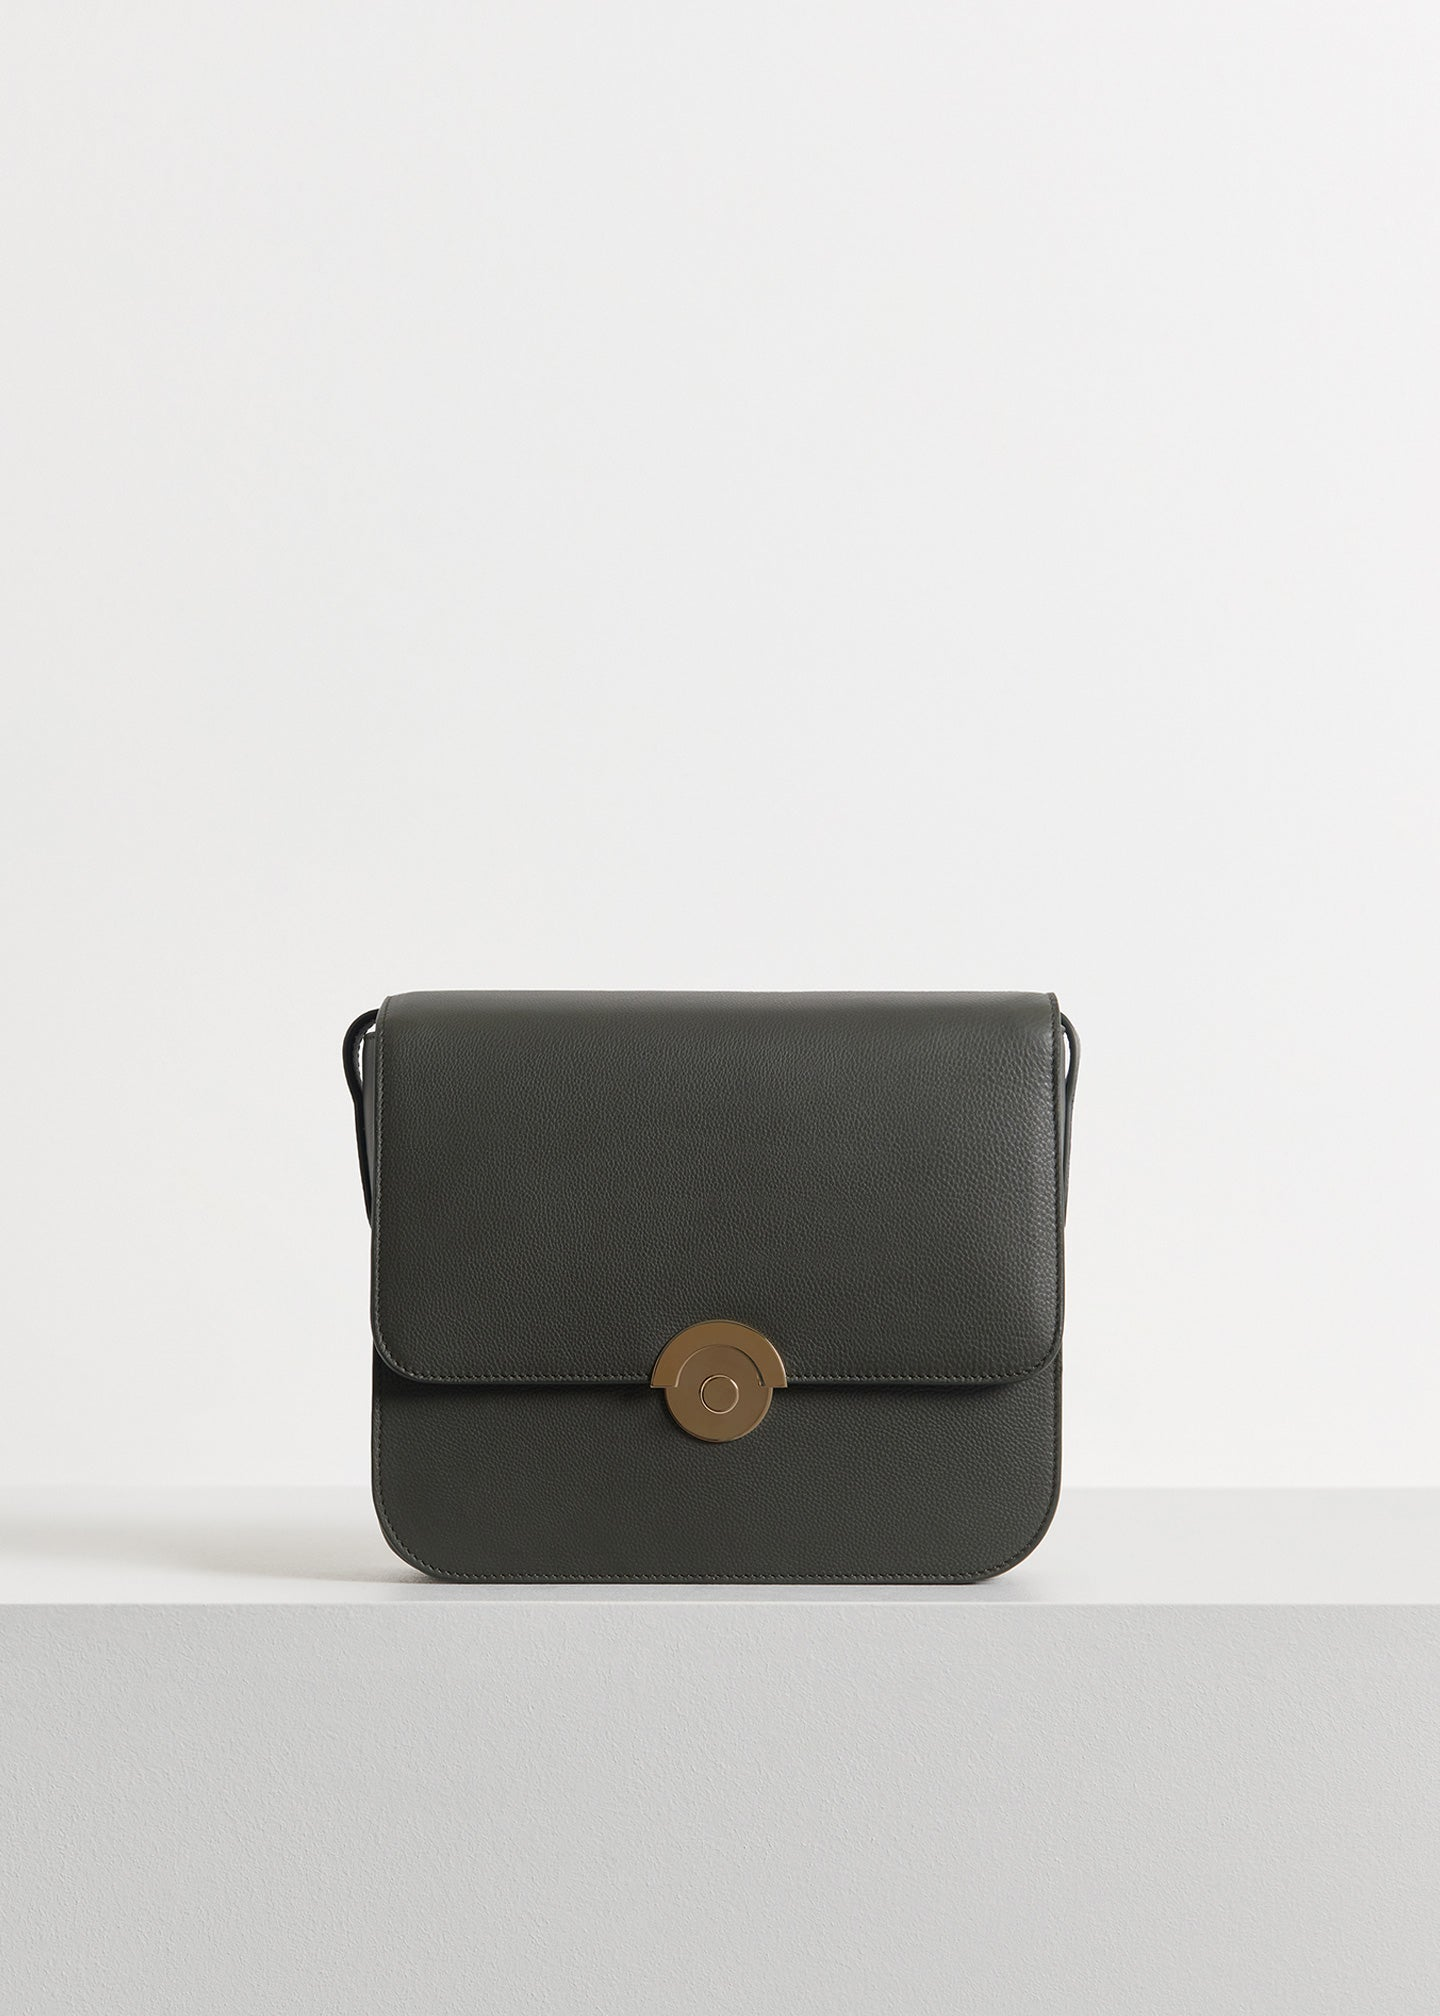 Box Bag in Pebbled Leather - Olive - CO